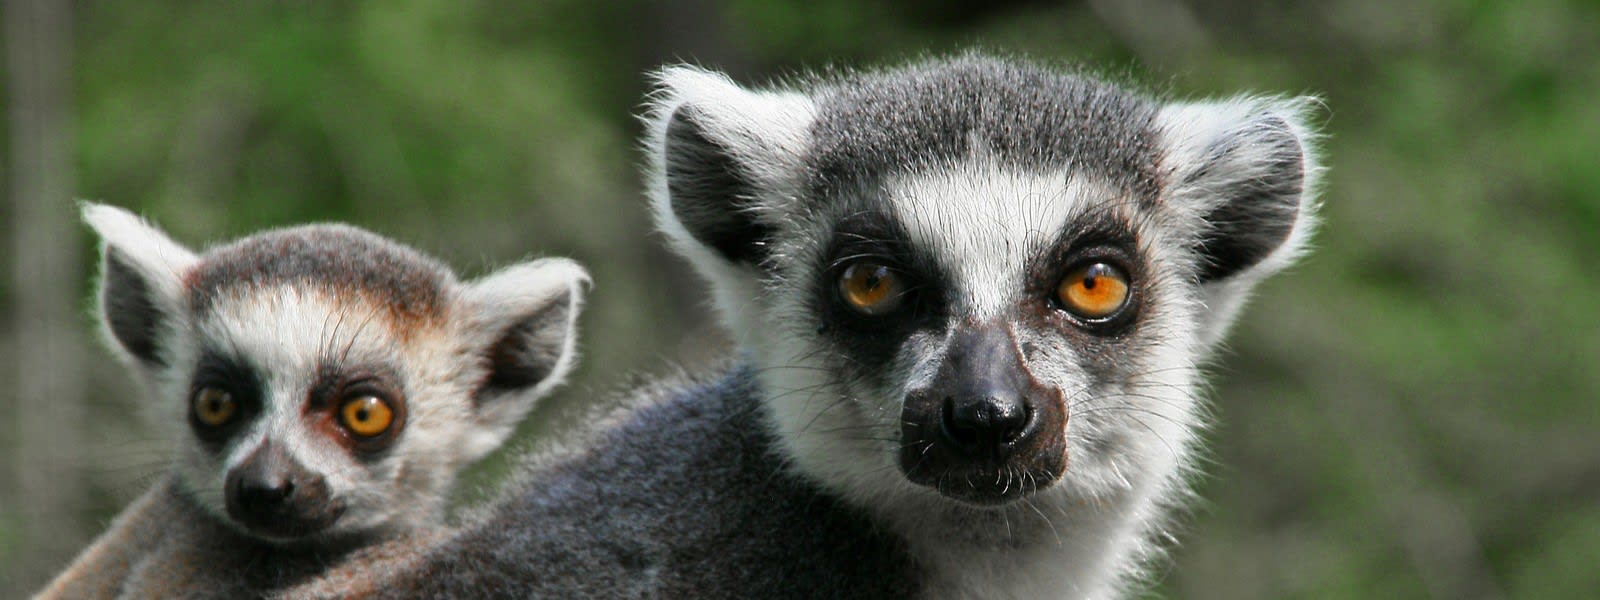 Lemur yoga: the lowdown